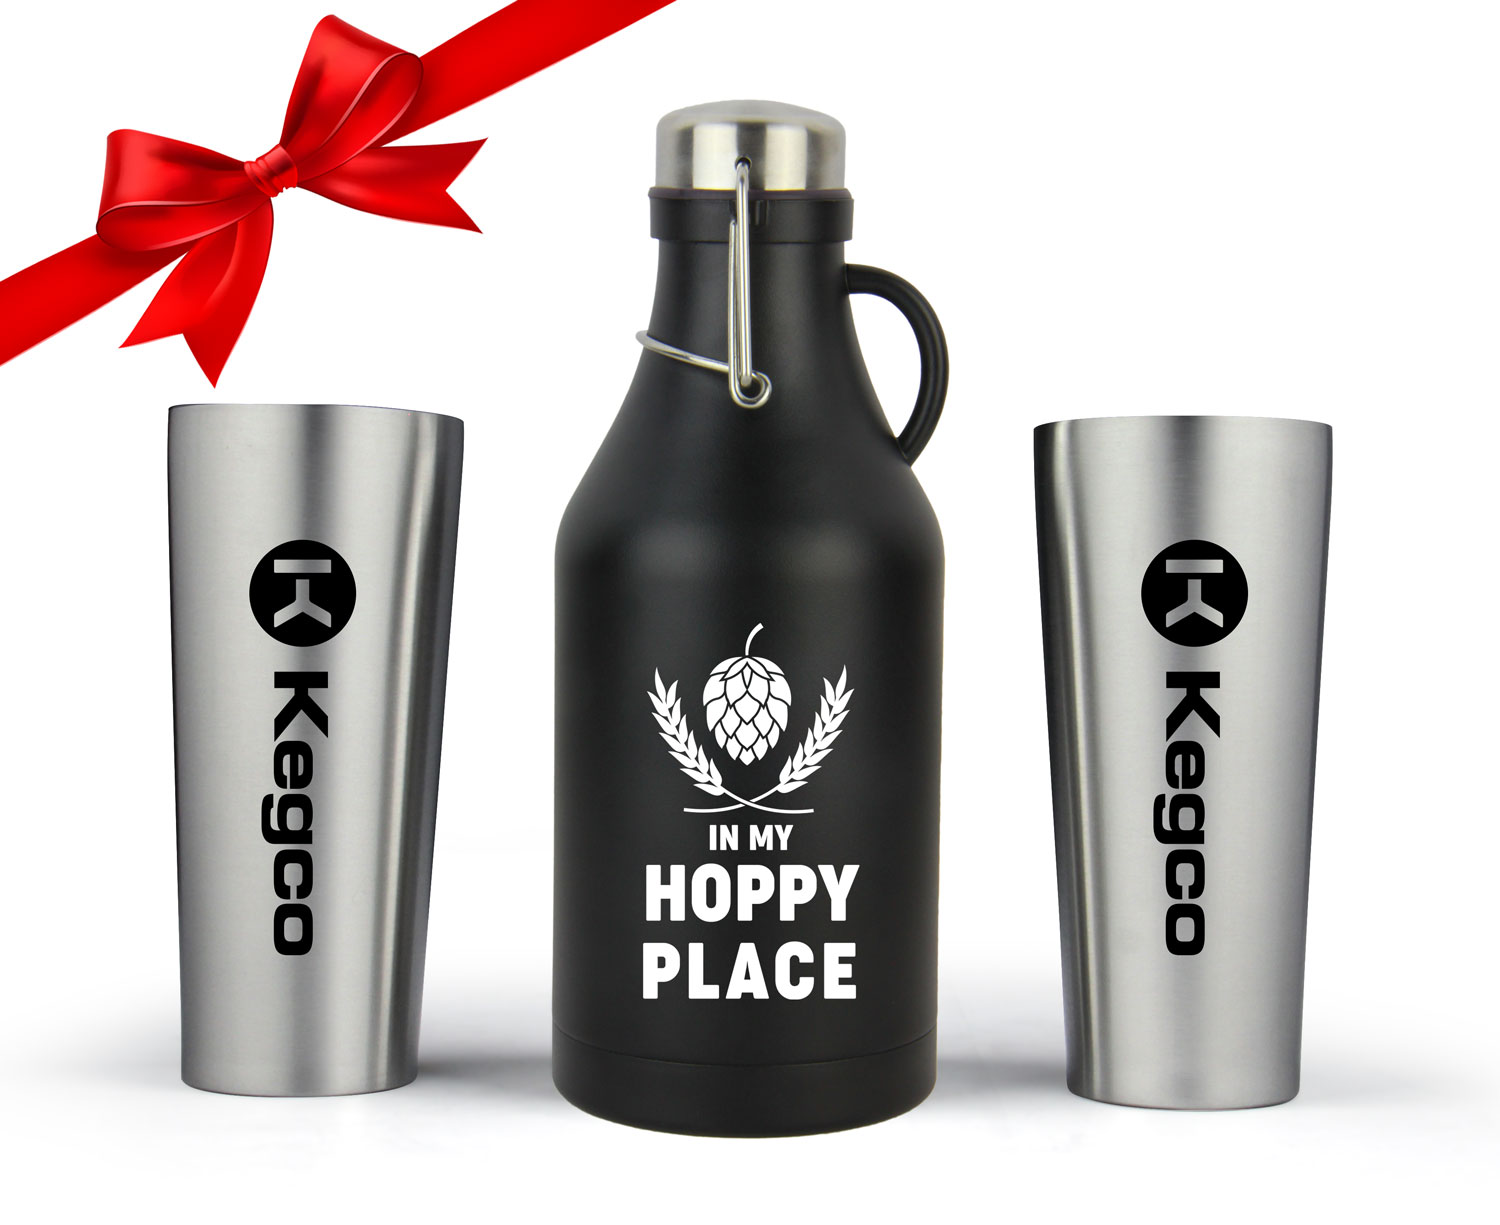 Growler and glasses stocking stuffer